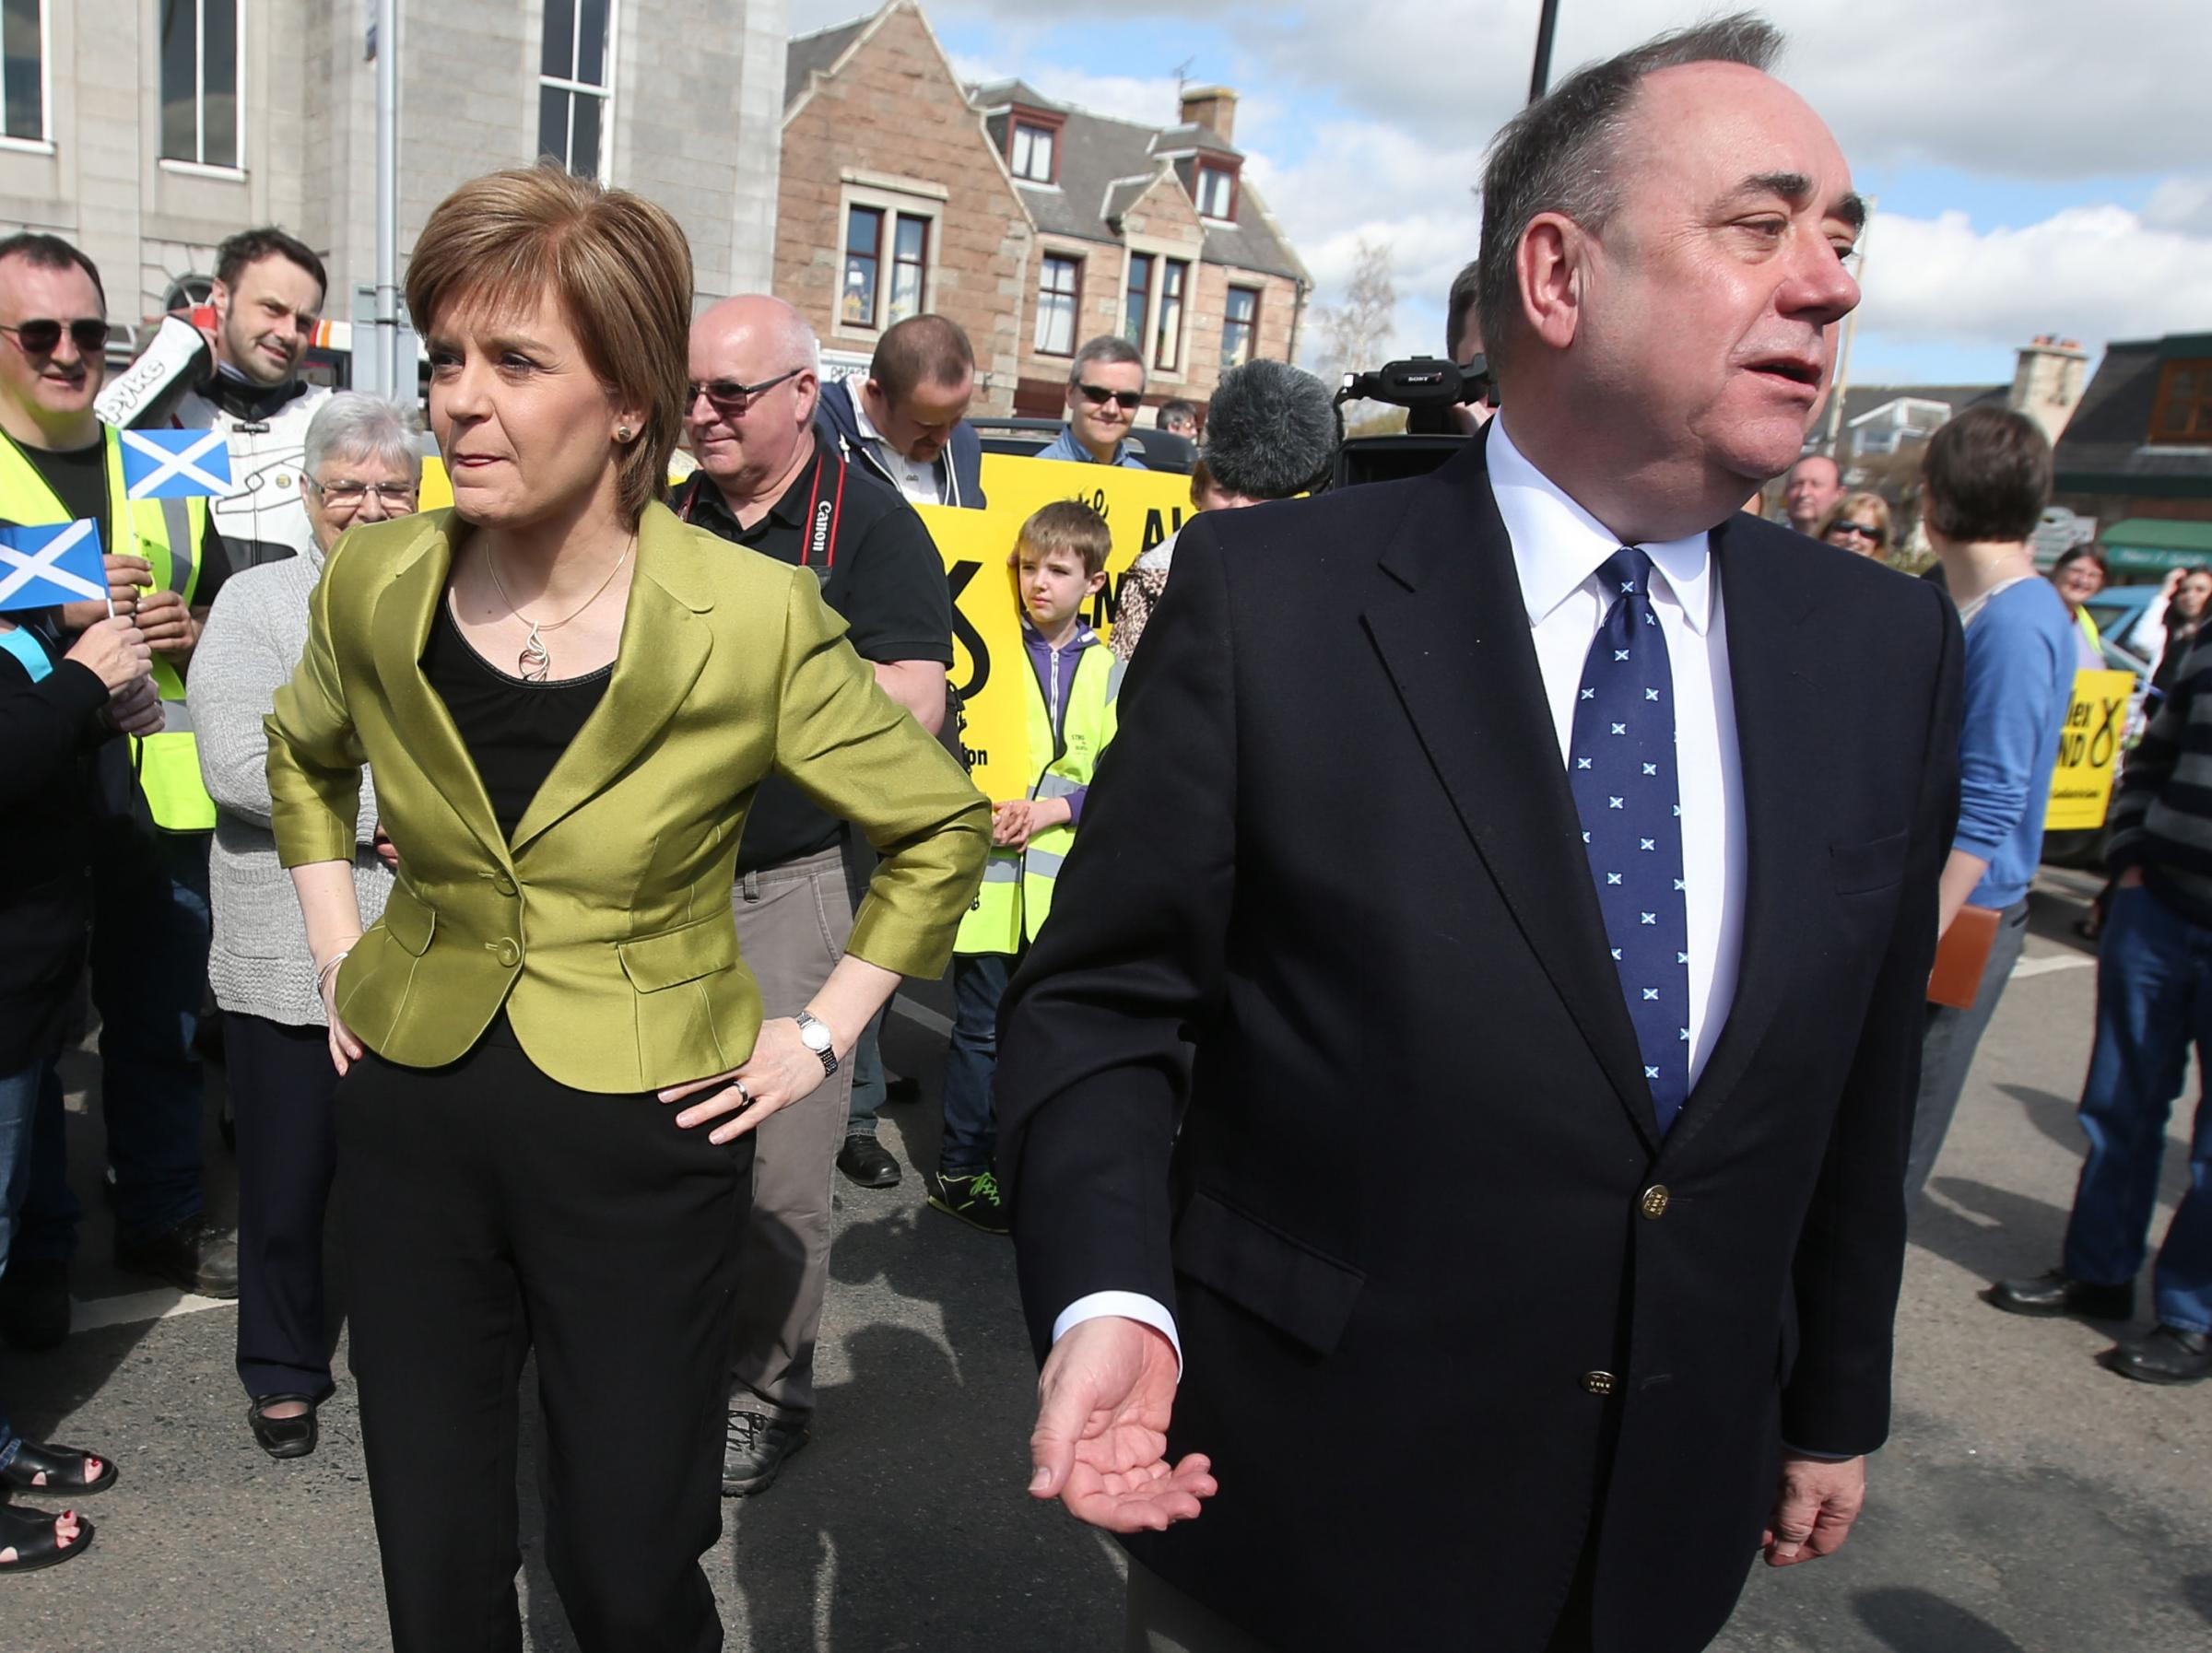 This is why voters in Canada are tuning into the Scottish election